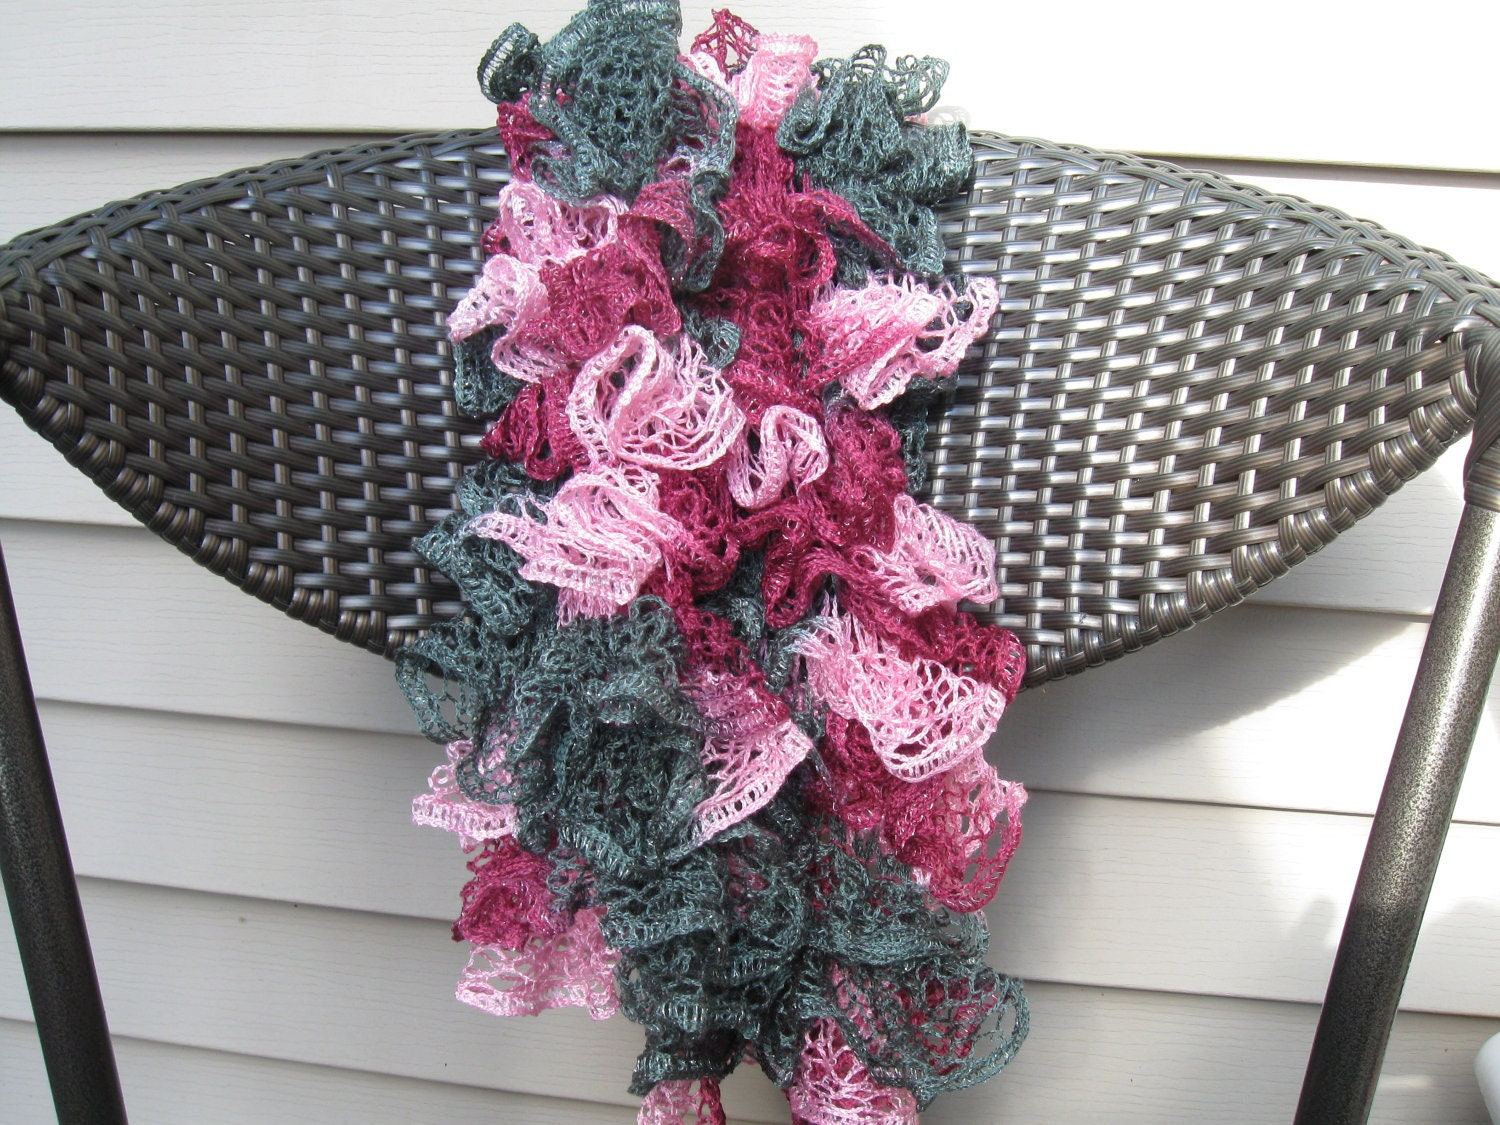 Ruffled Shades of Grey and Pink Yarn Hand Knitted Soft Acrylic Scarf 55 inches long